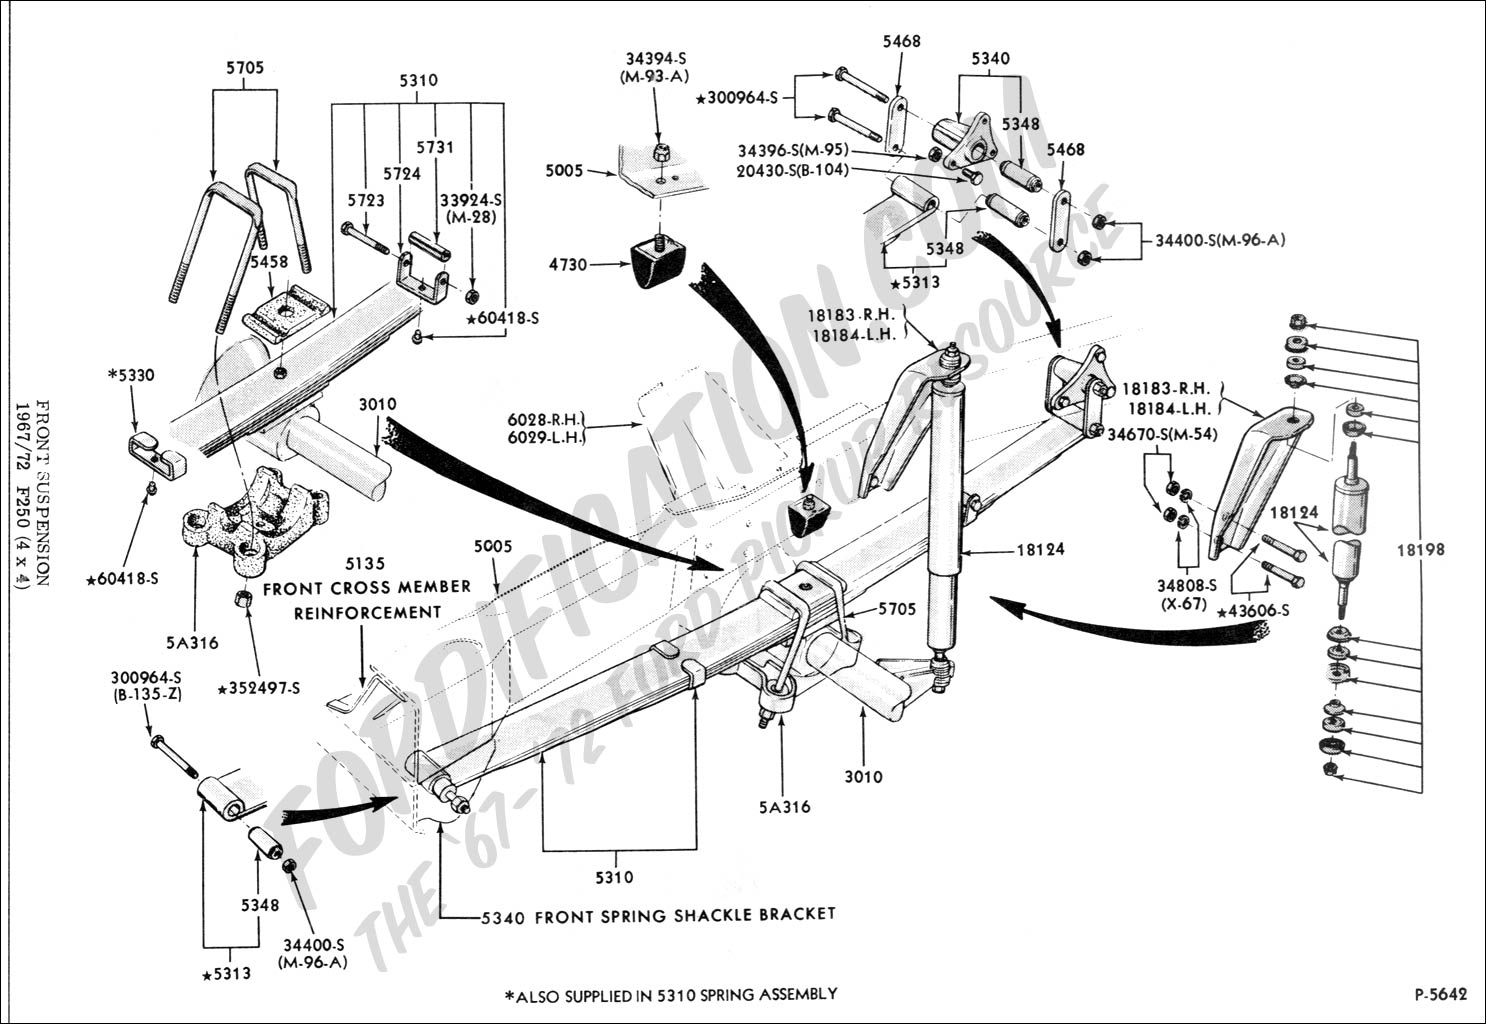 s10 4wd suspension diagram best wiring library 2004 Jeep Liberty PCM Replacement f350 4x4 independent suspension diagram box wiring diagram rh 29 pfotenpower ev de f350 4x4 front